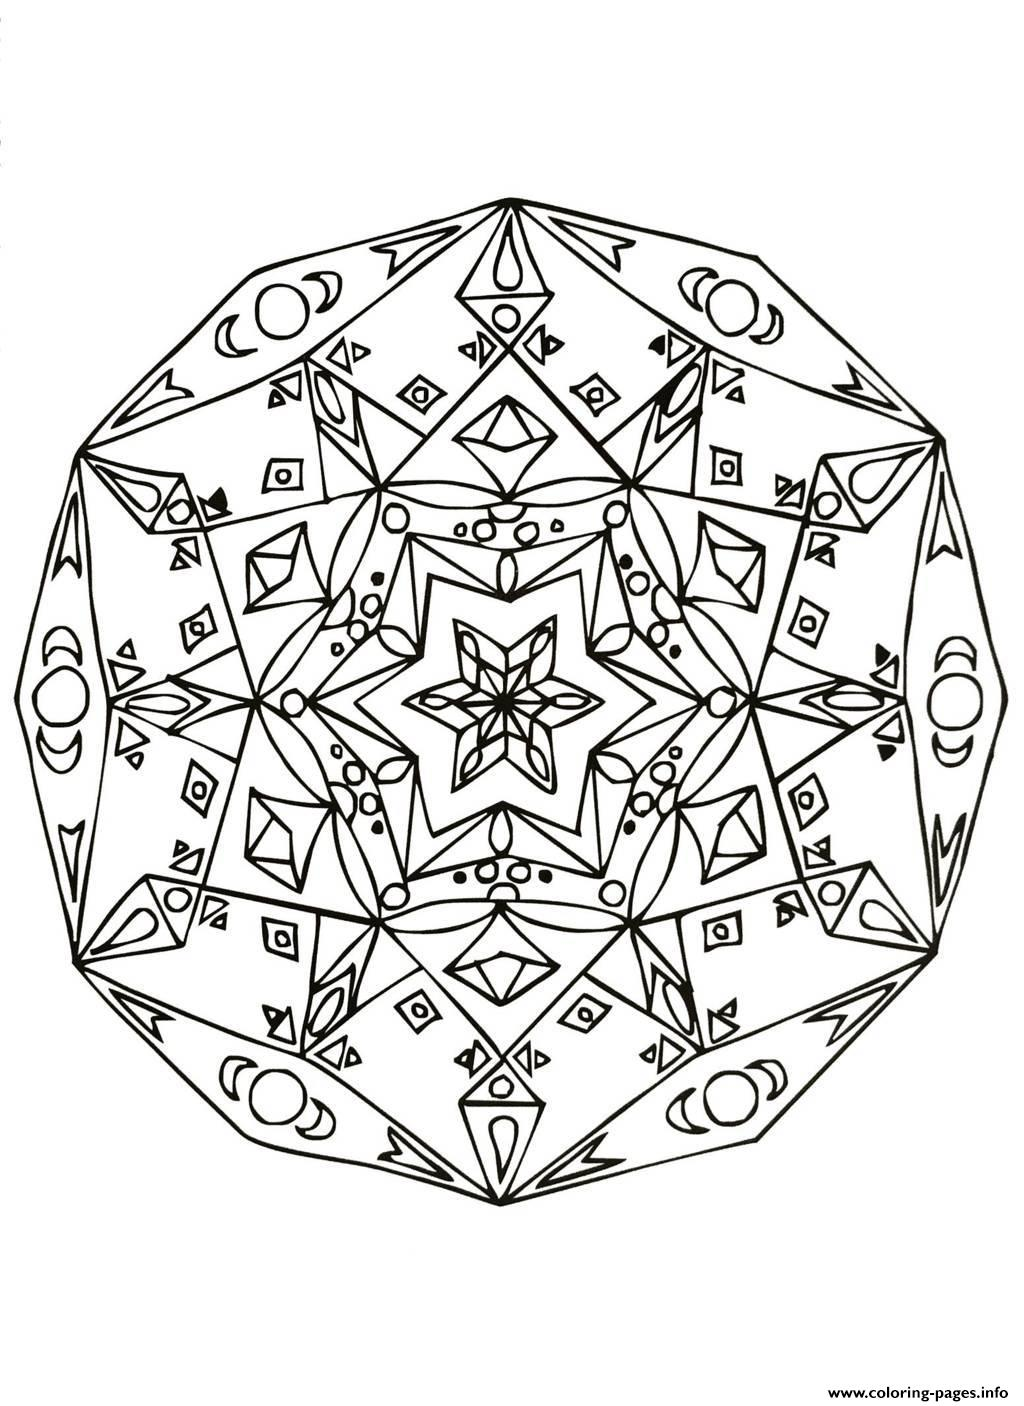 Mandalas To Download For Free 16  coloring pages